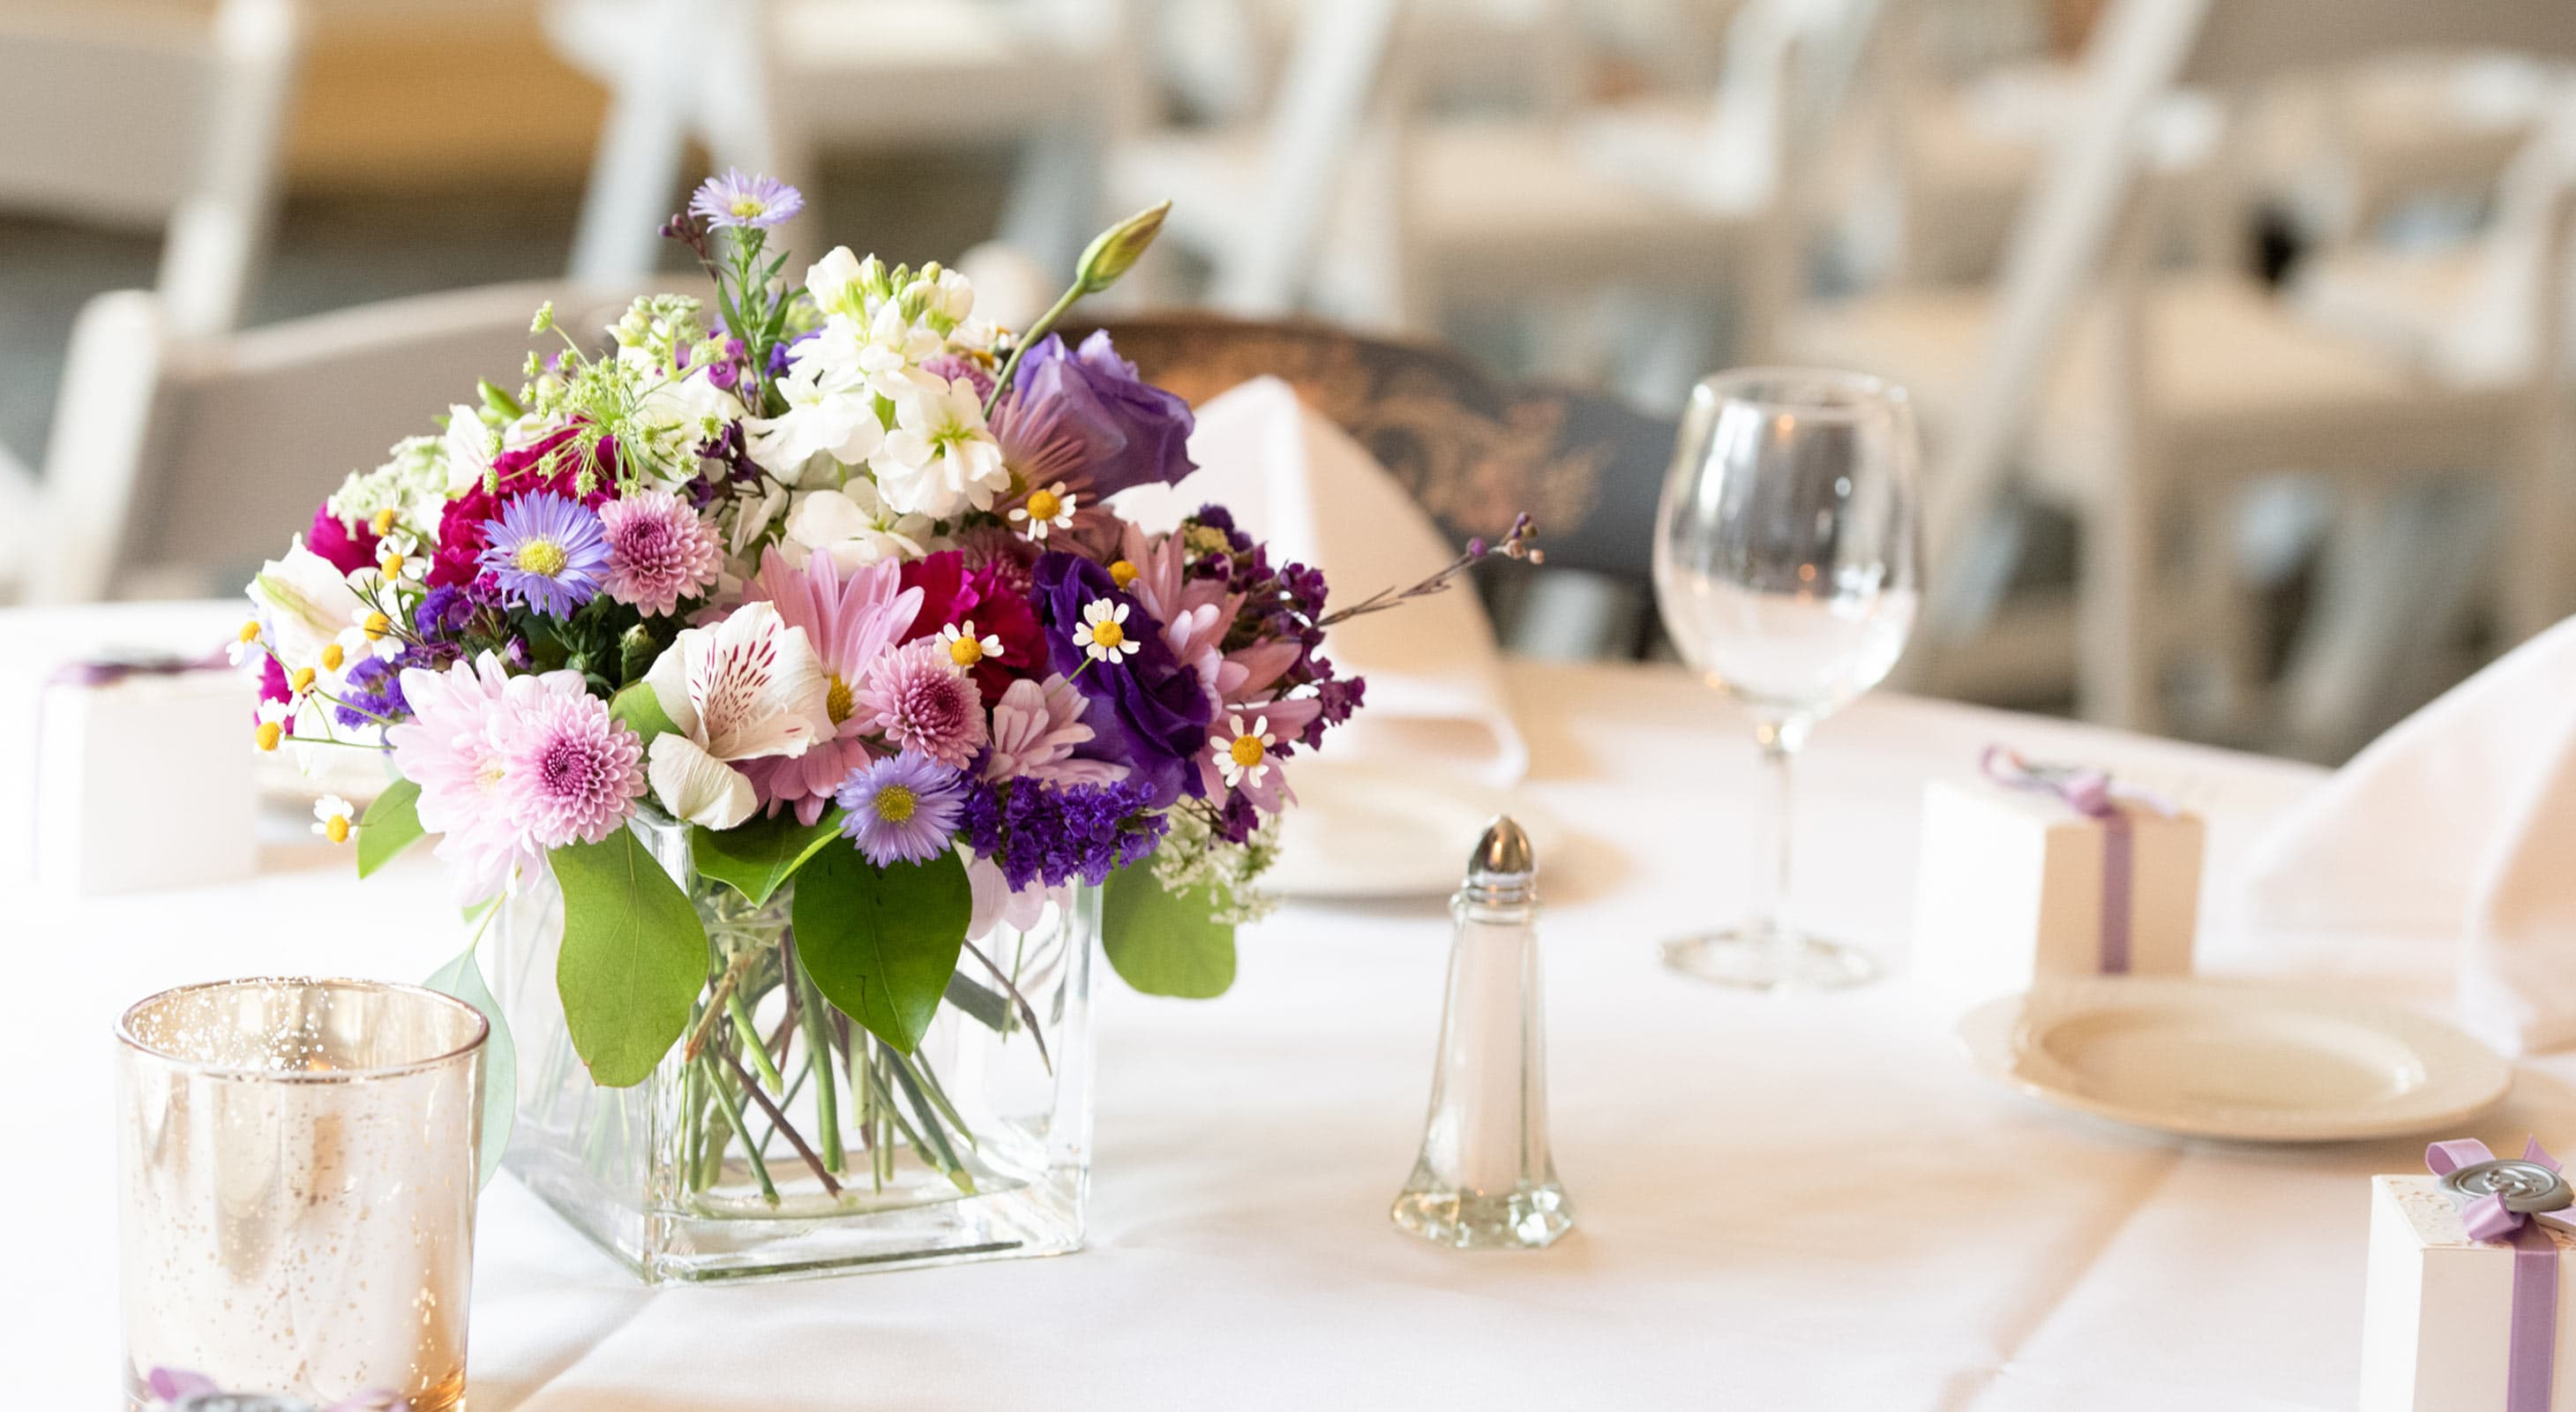 Centerpiece on Table at reception in New Hampshire